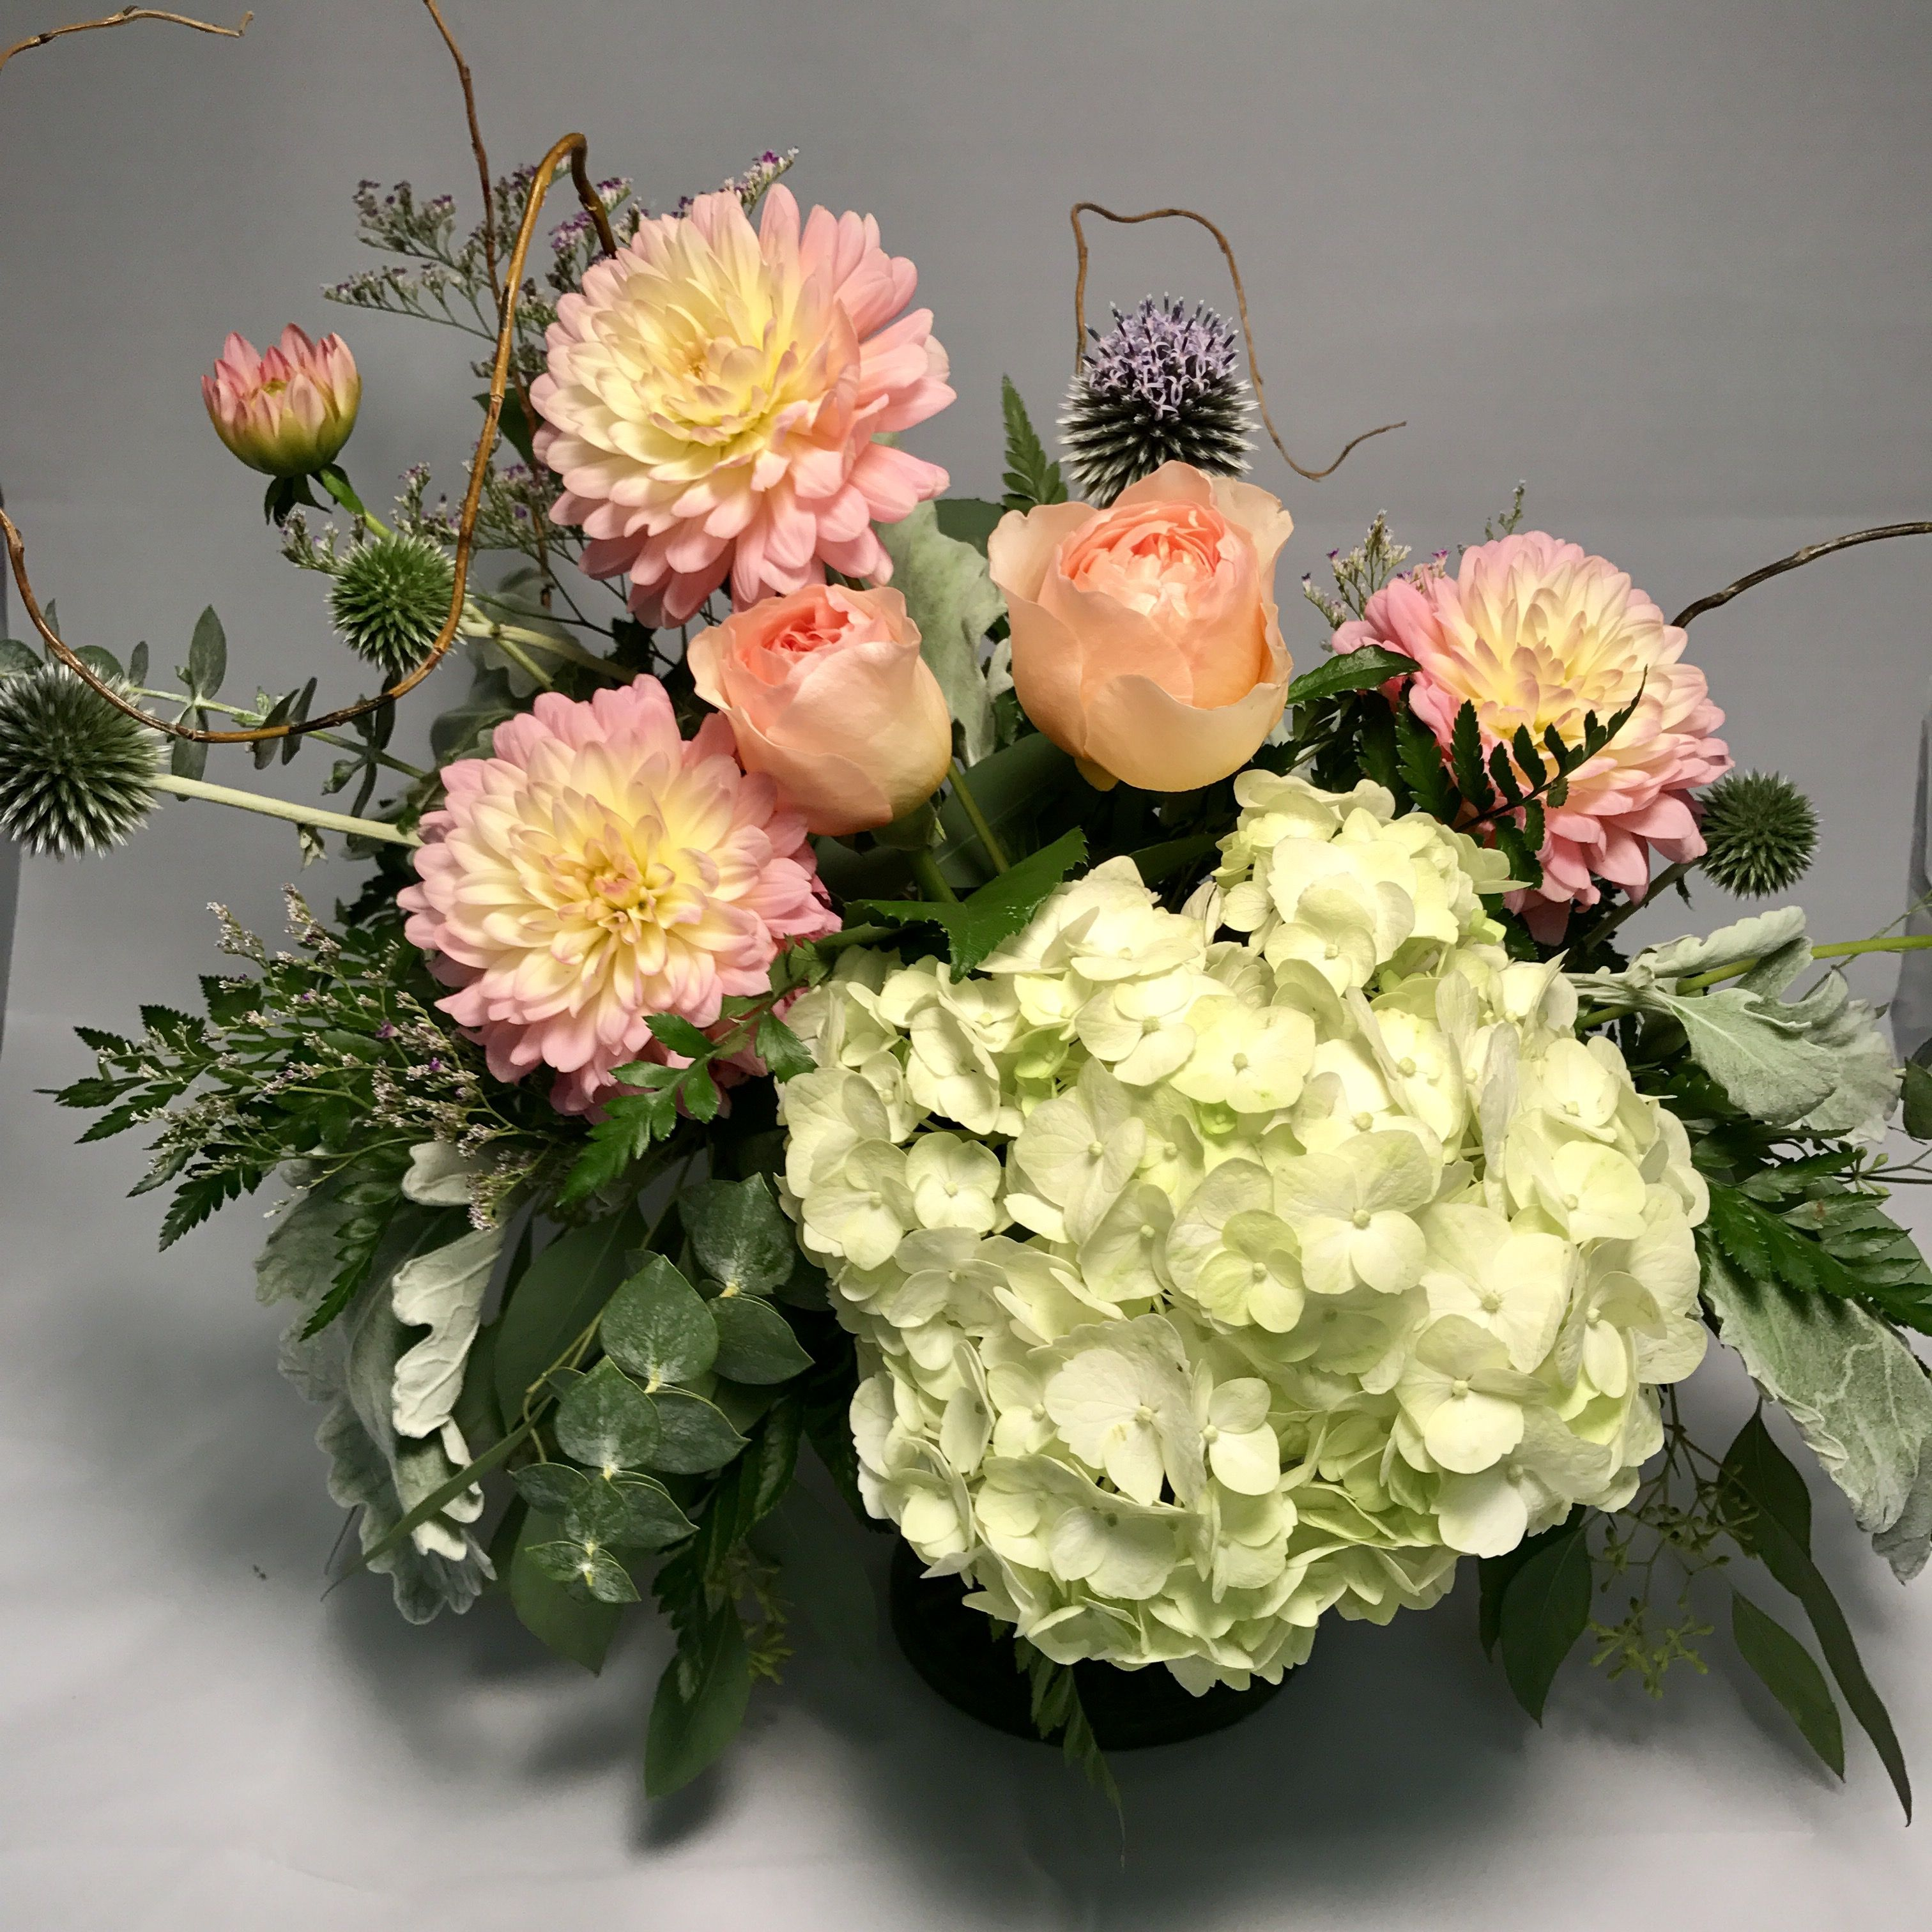 Peach Roses And Dahlia Arrangement With An Amazing White Hydrangea